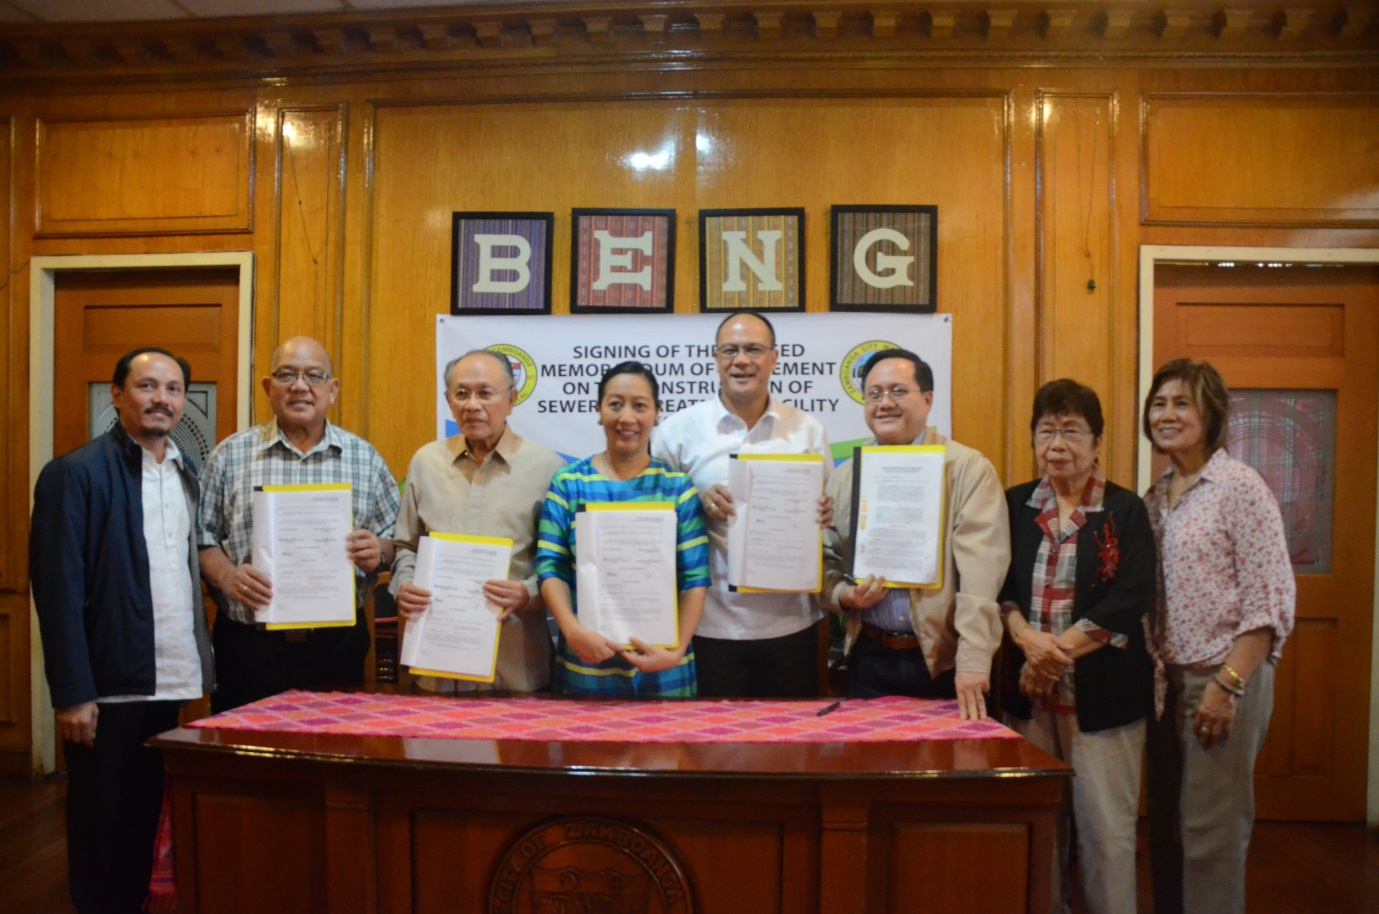 (From left to right) ZCWD CorPlan Department Manager Michael Angelo M. Carbon, Councilor Cesar M. Jimenez, City Legal Officer Jesus C. Carbon, Mayor Maria Isabelle G. Climaco, ZCWD General Manager Leonardo Rey D. Vasquez, ZCWD Chairperson Edwin M. Caliolio, ZCWD Director Milagros L. Fernandez, M.D., ZCWD Director Esther G. Orendain during the signing of Revised Memorandum of Agreement on the Construction of sewerage Treatment Facility yesterday